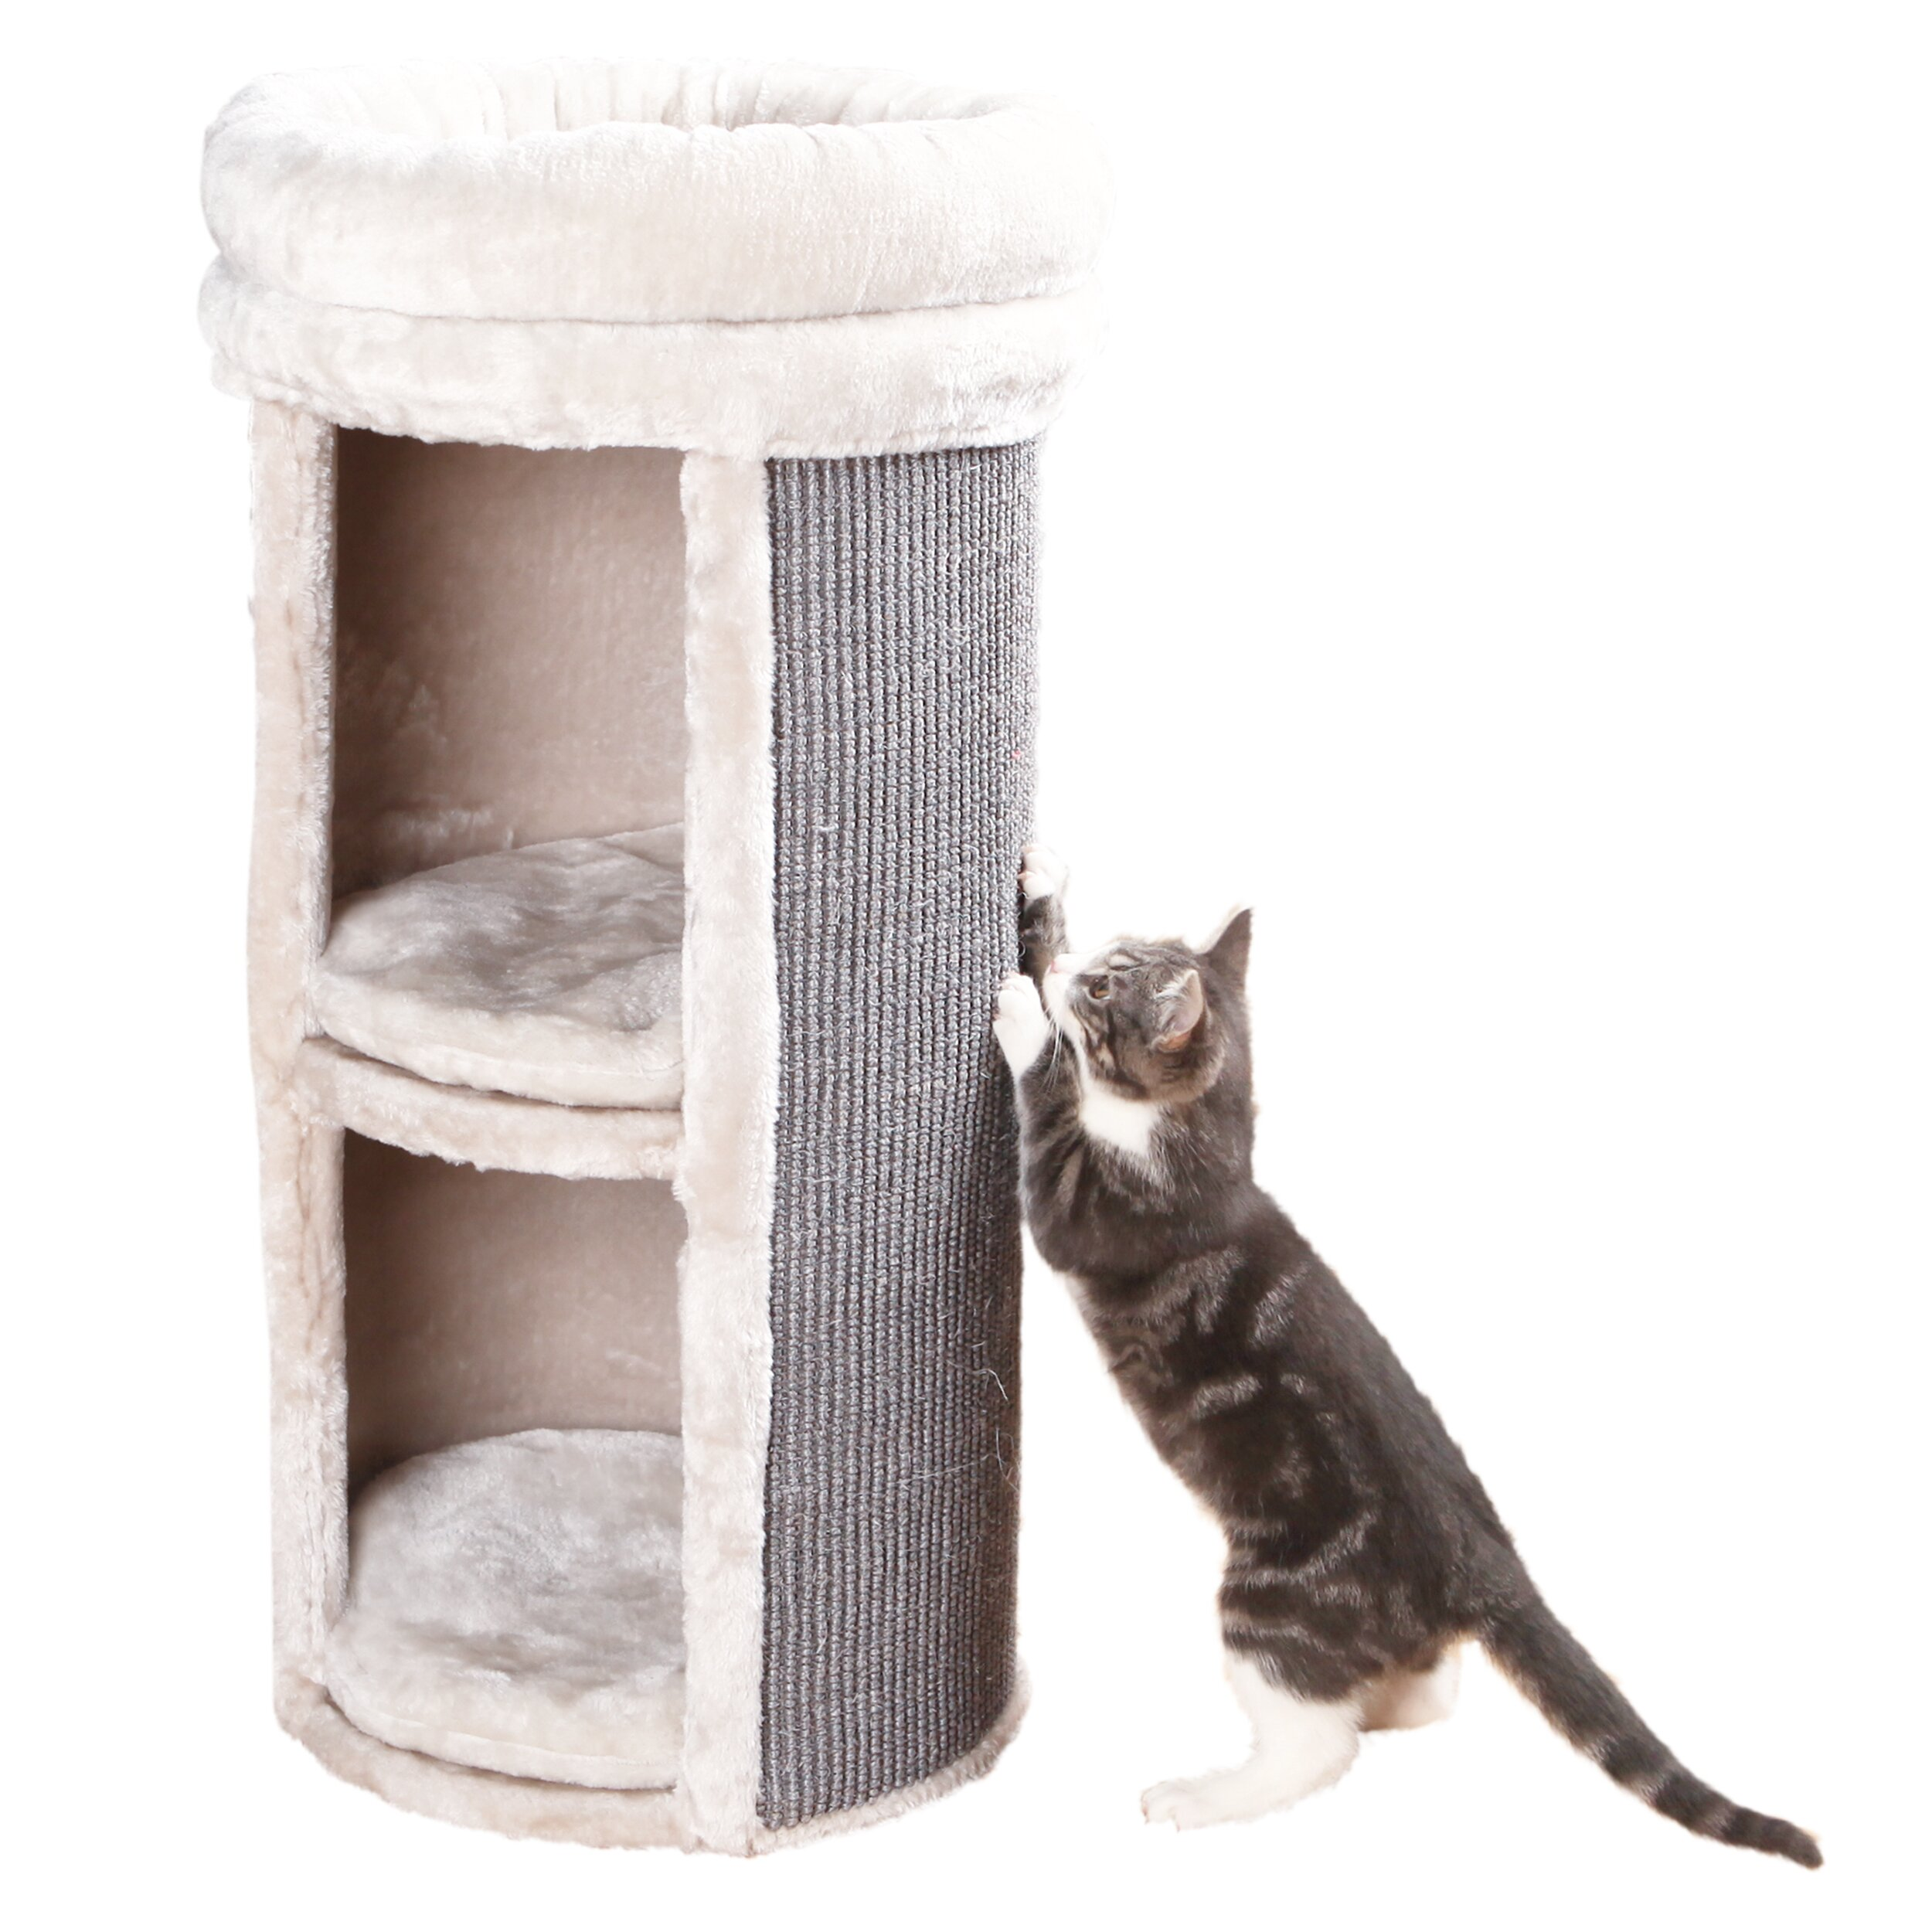 Trixie mexia 2 story cat tower scratching post reviews for Build your own cat scratch tower